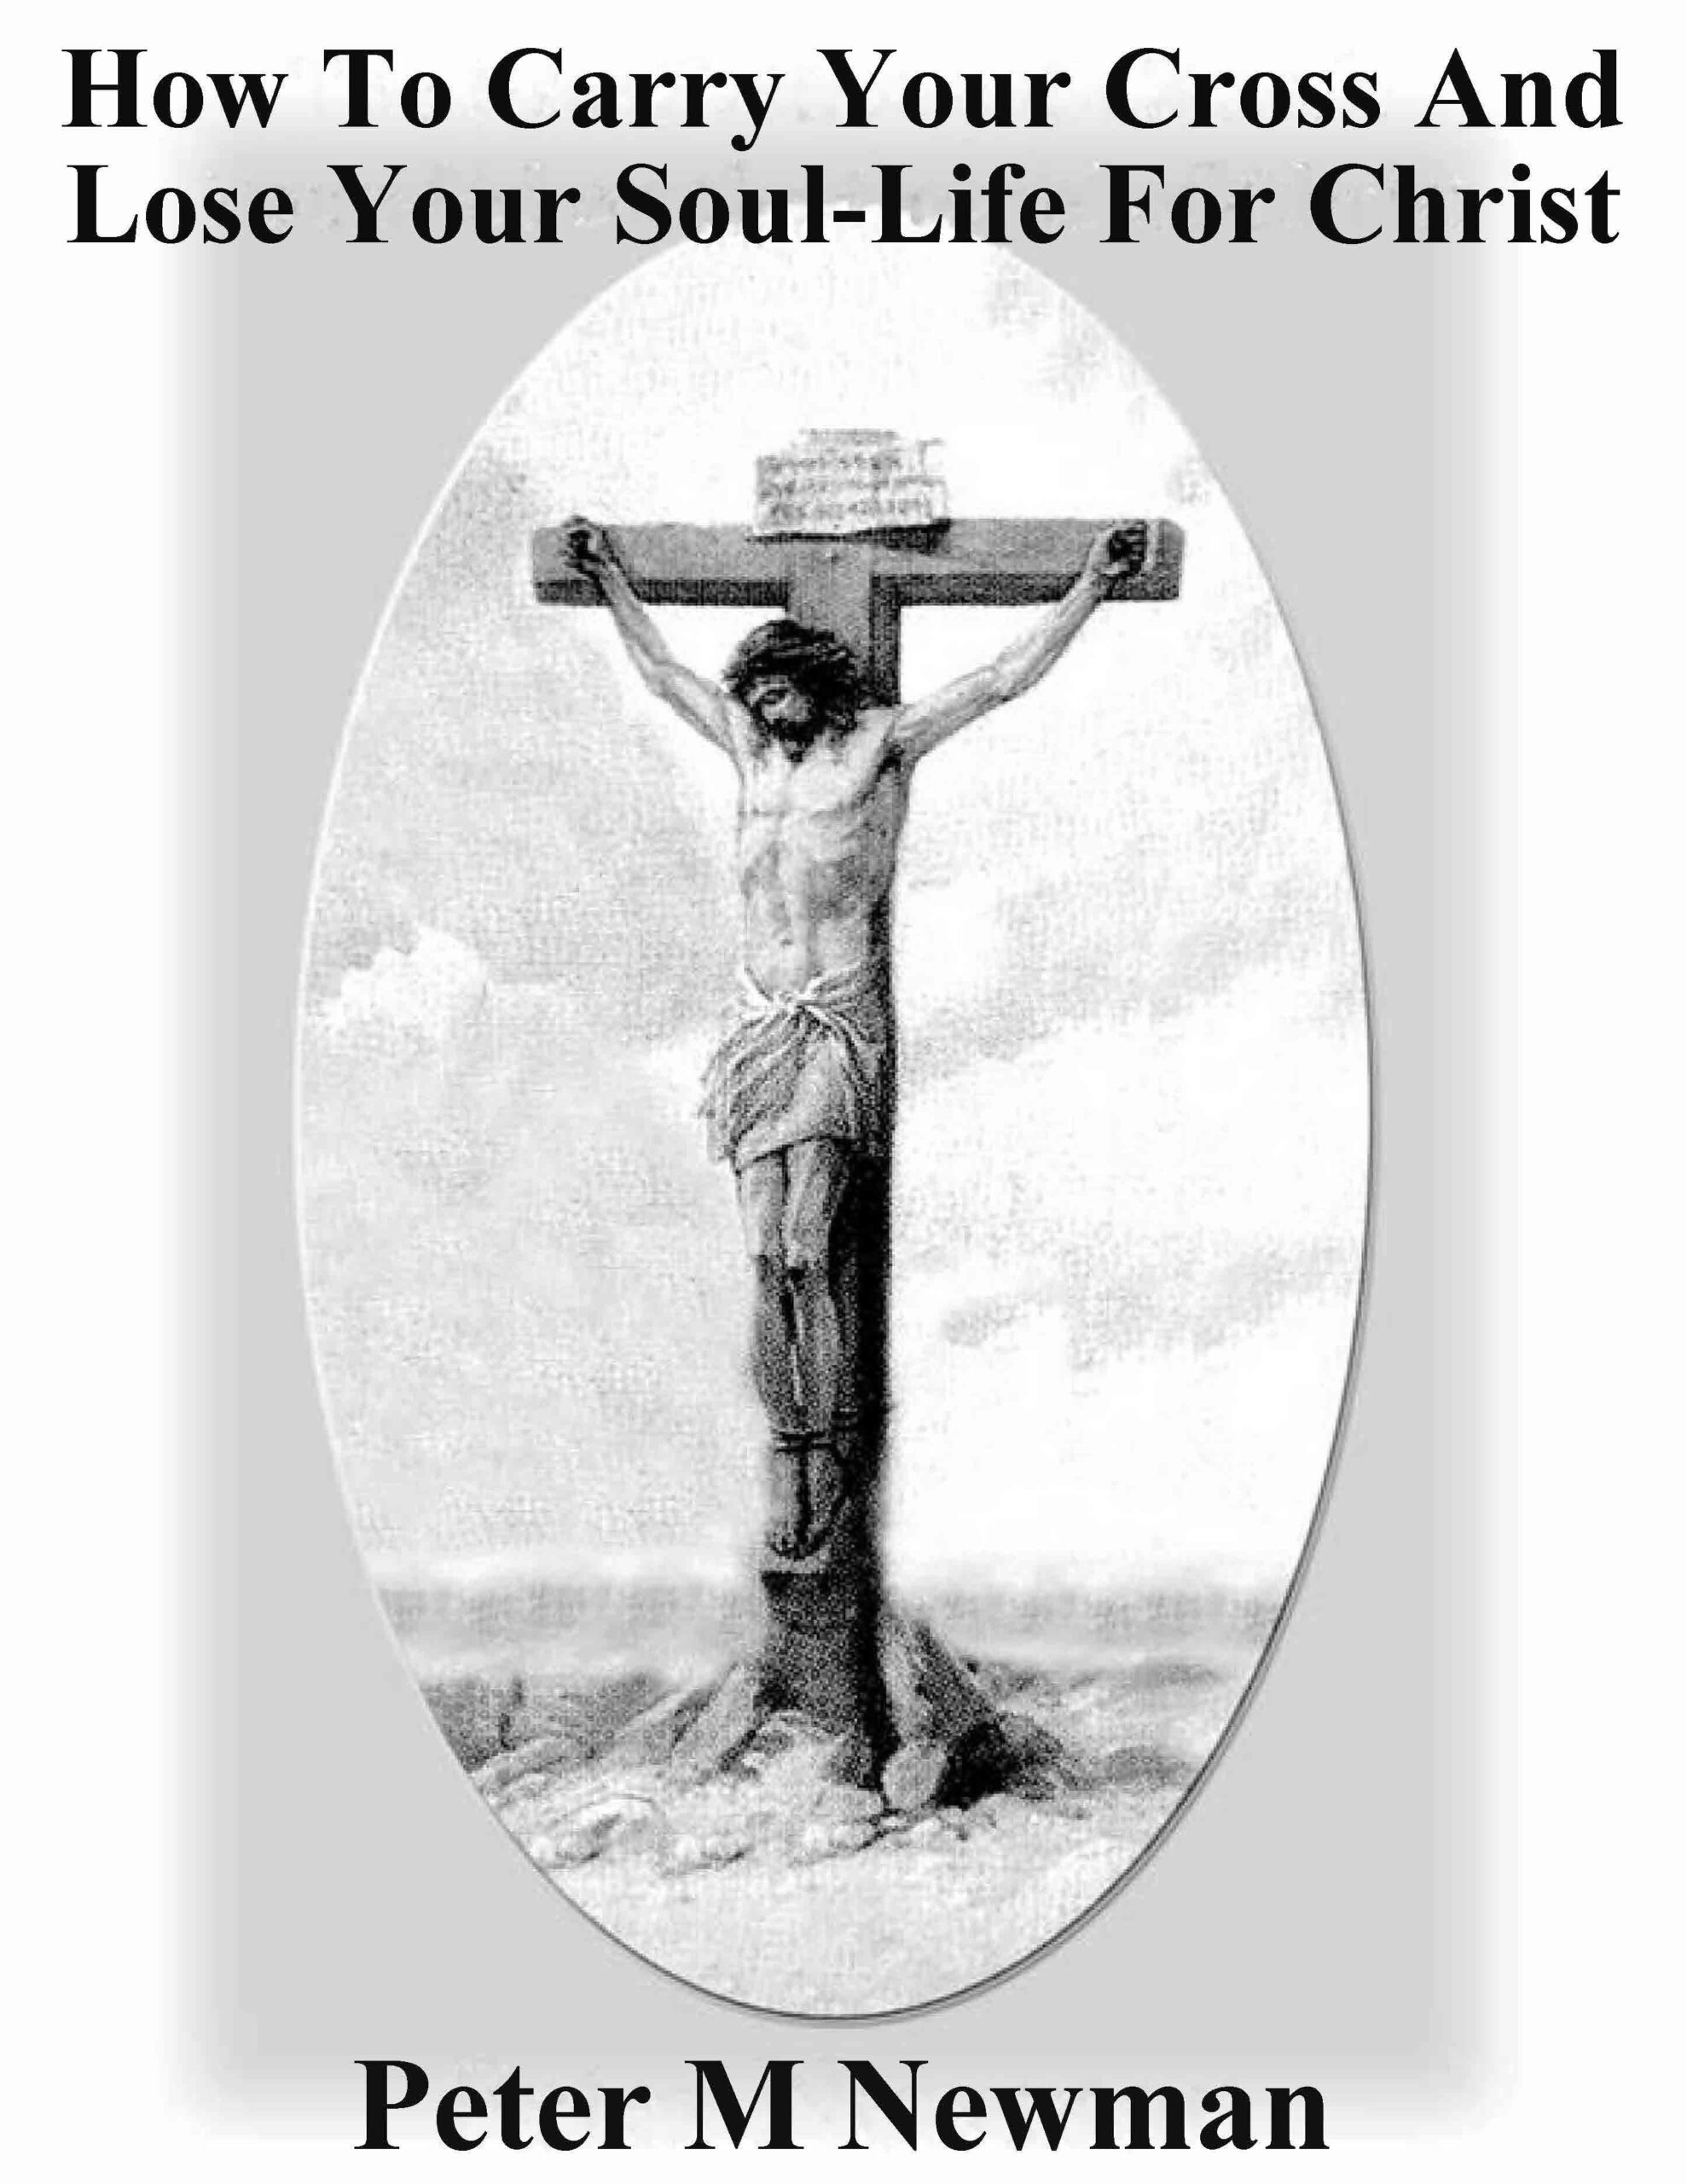 How to Carry Your Cross and Lose Your Soul-Life for Christ